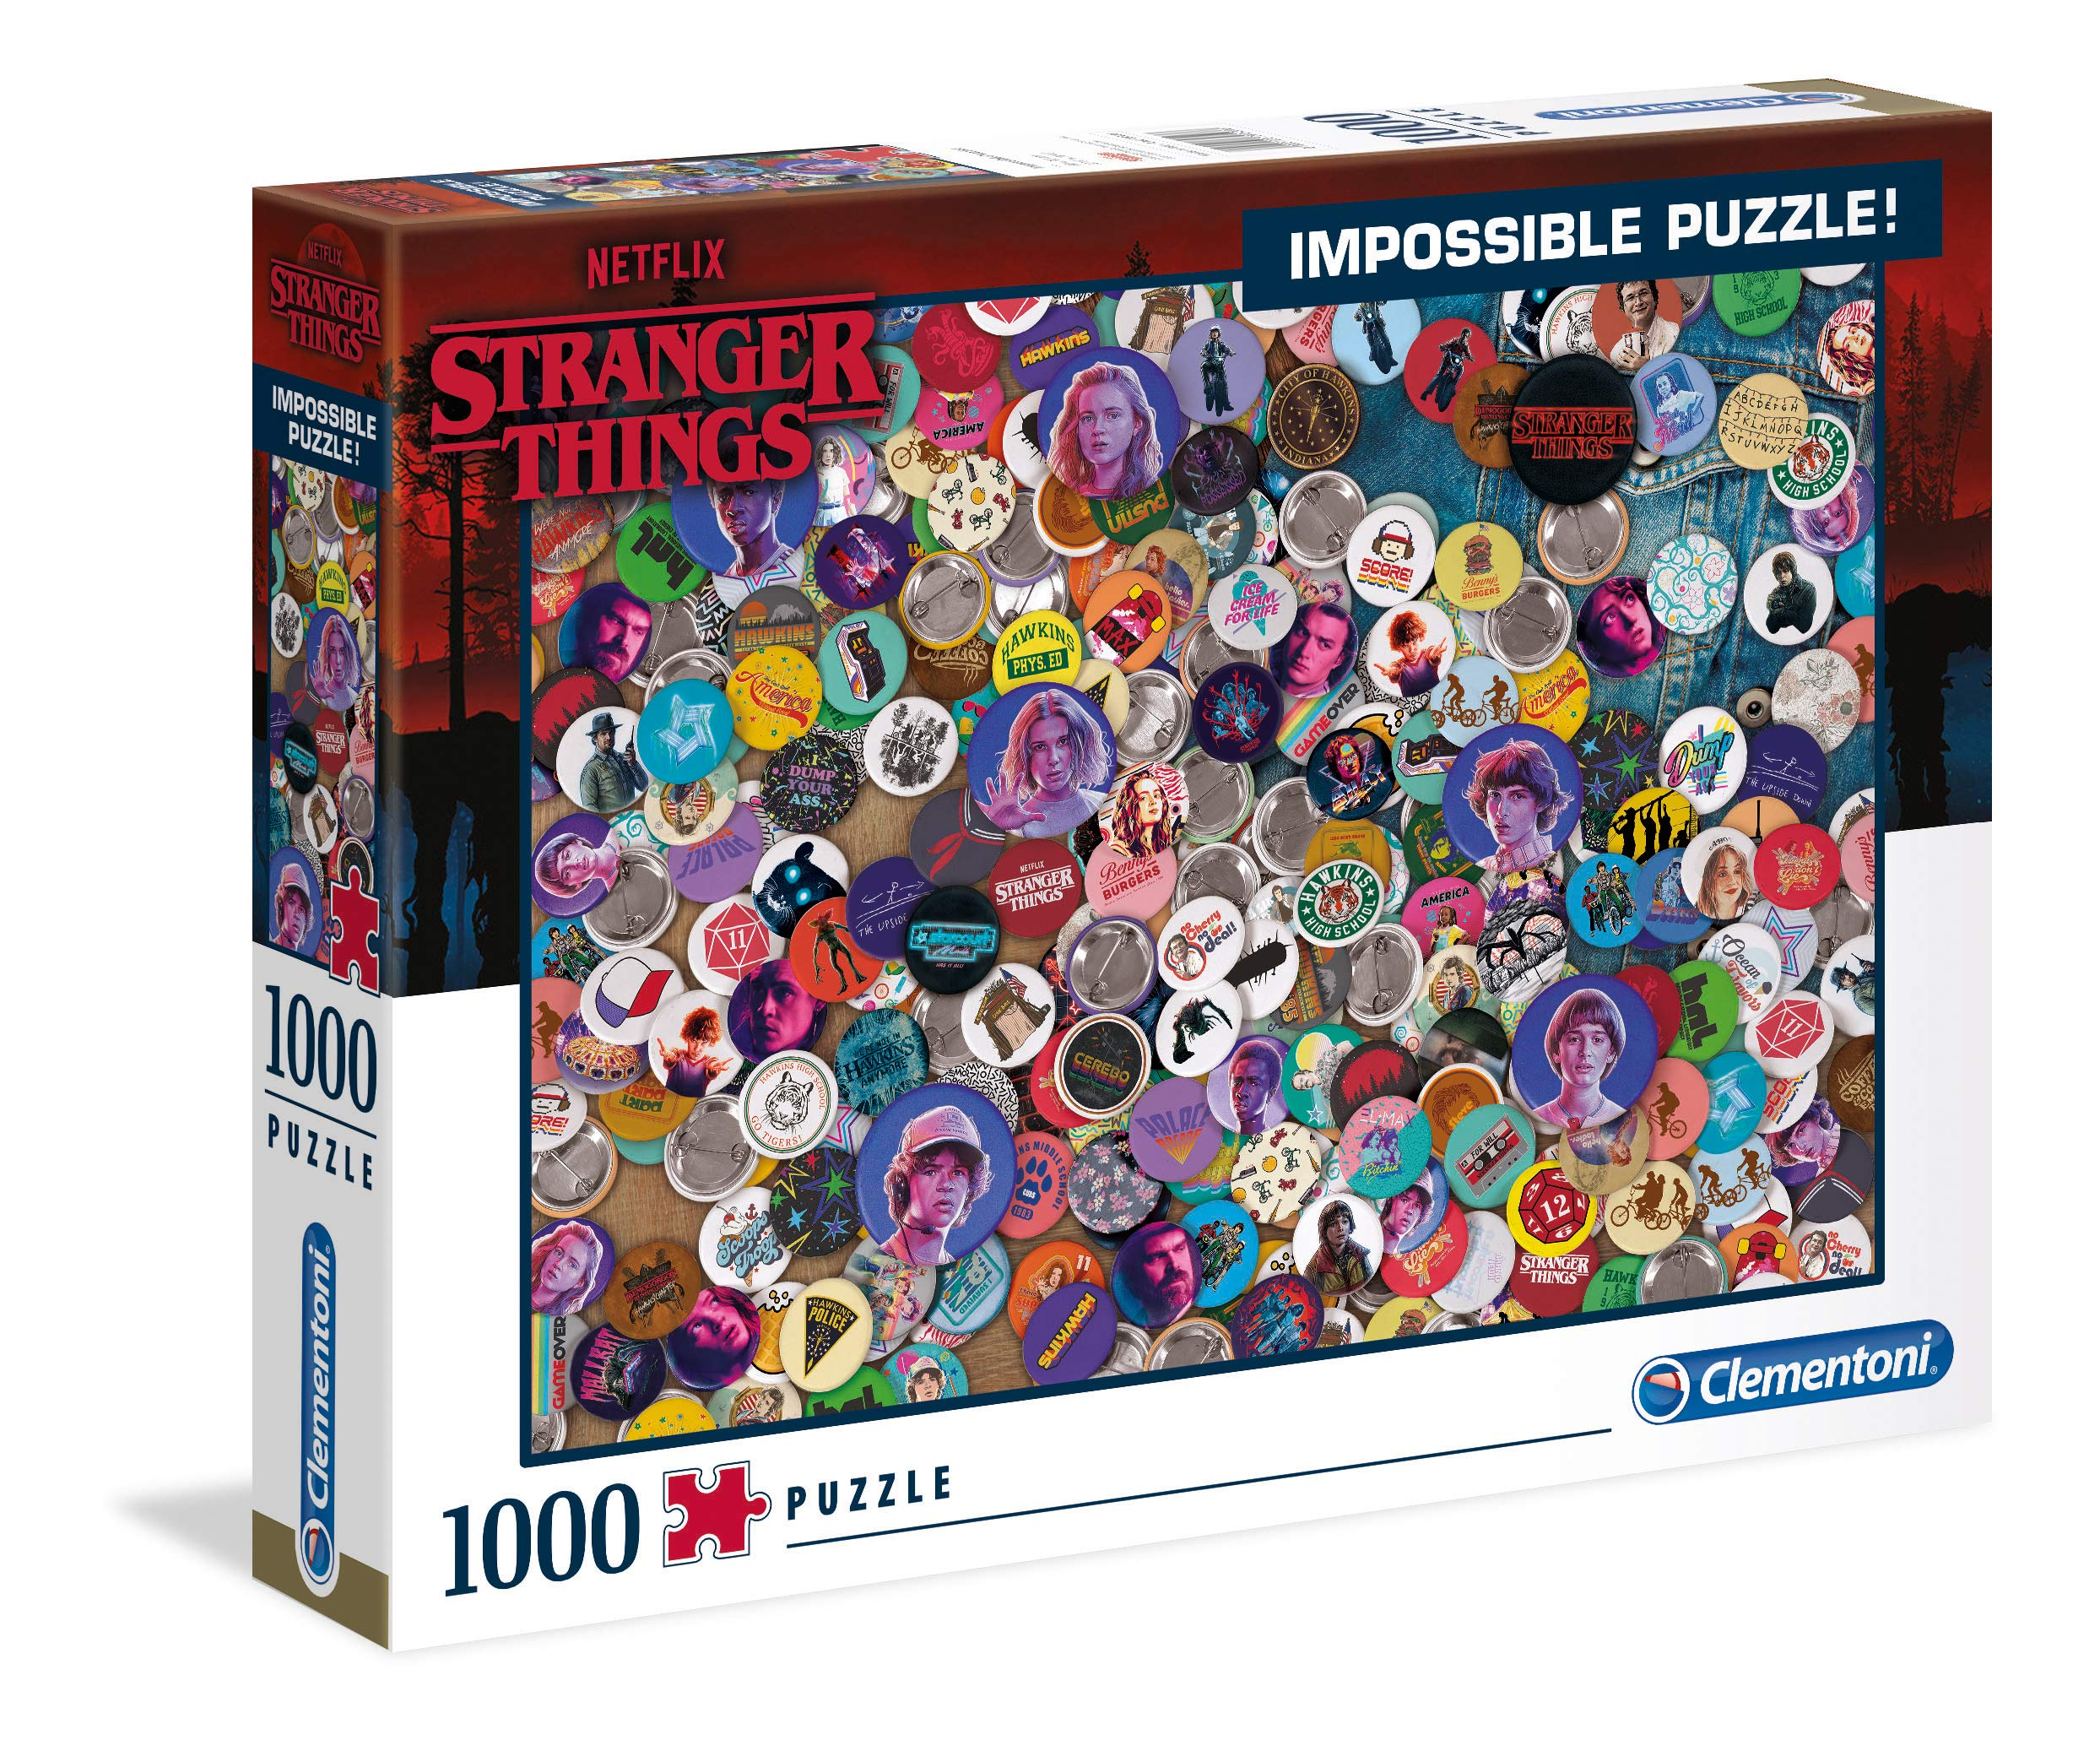 Clementoni 39528 Stranger Things Things-1000pc Impossible Puzzle